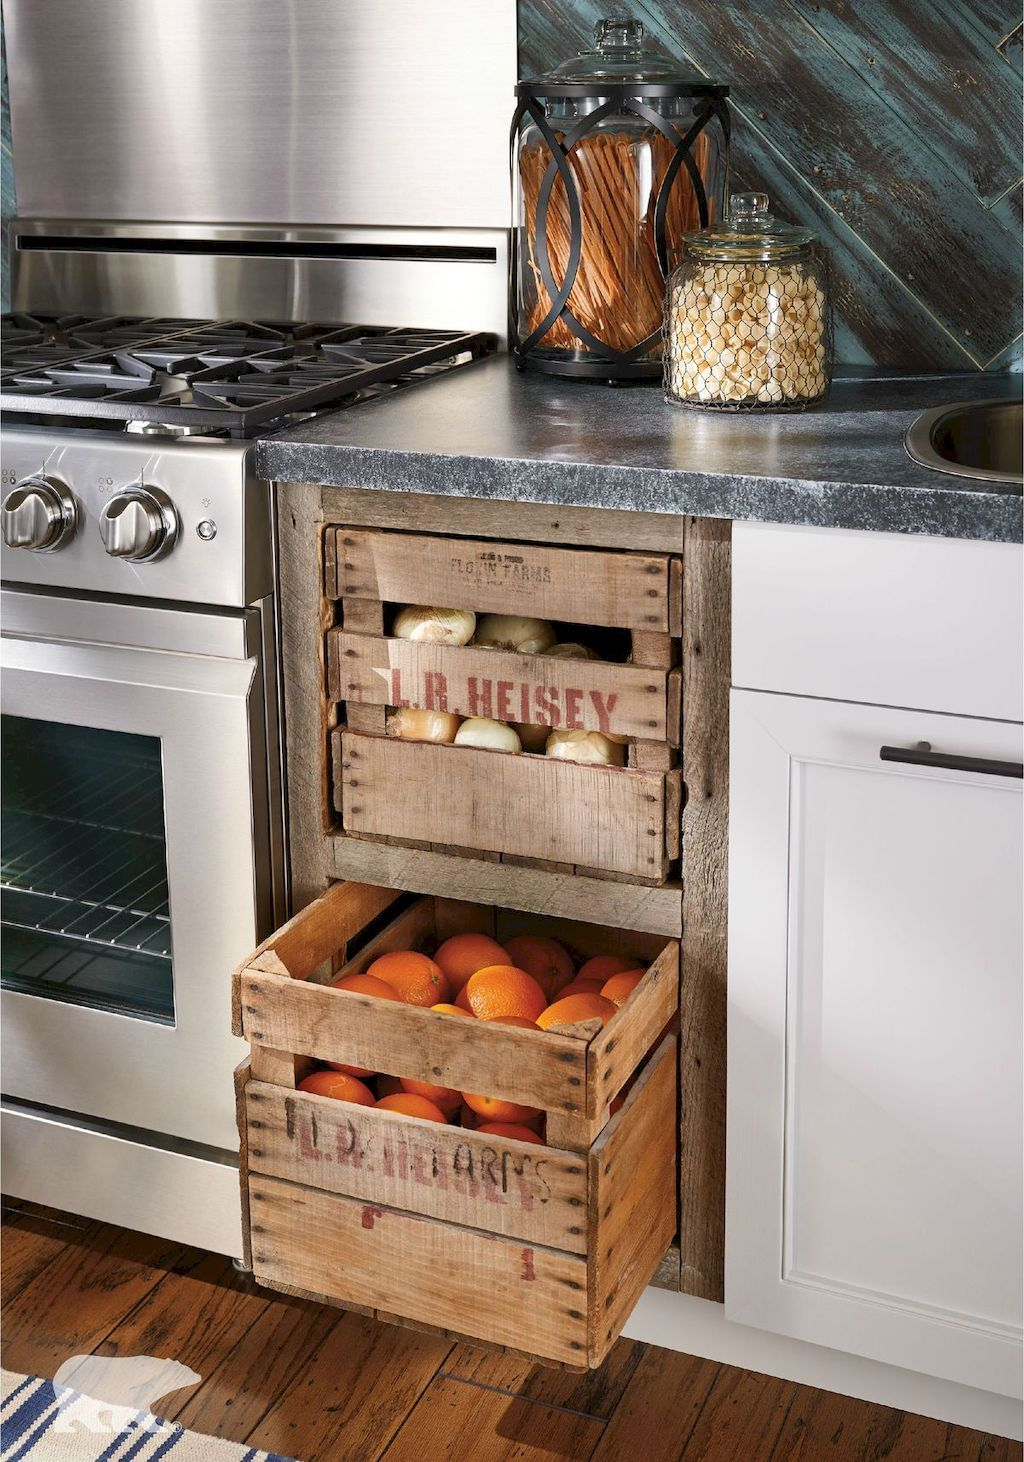 40 Brilliant Diy Kitchen Organization Ideas La Casa Farmhouse